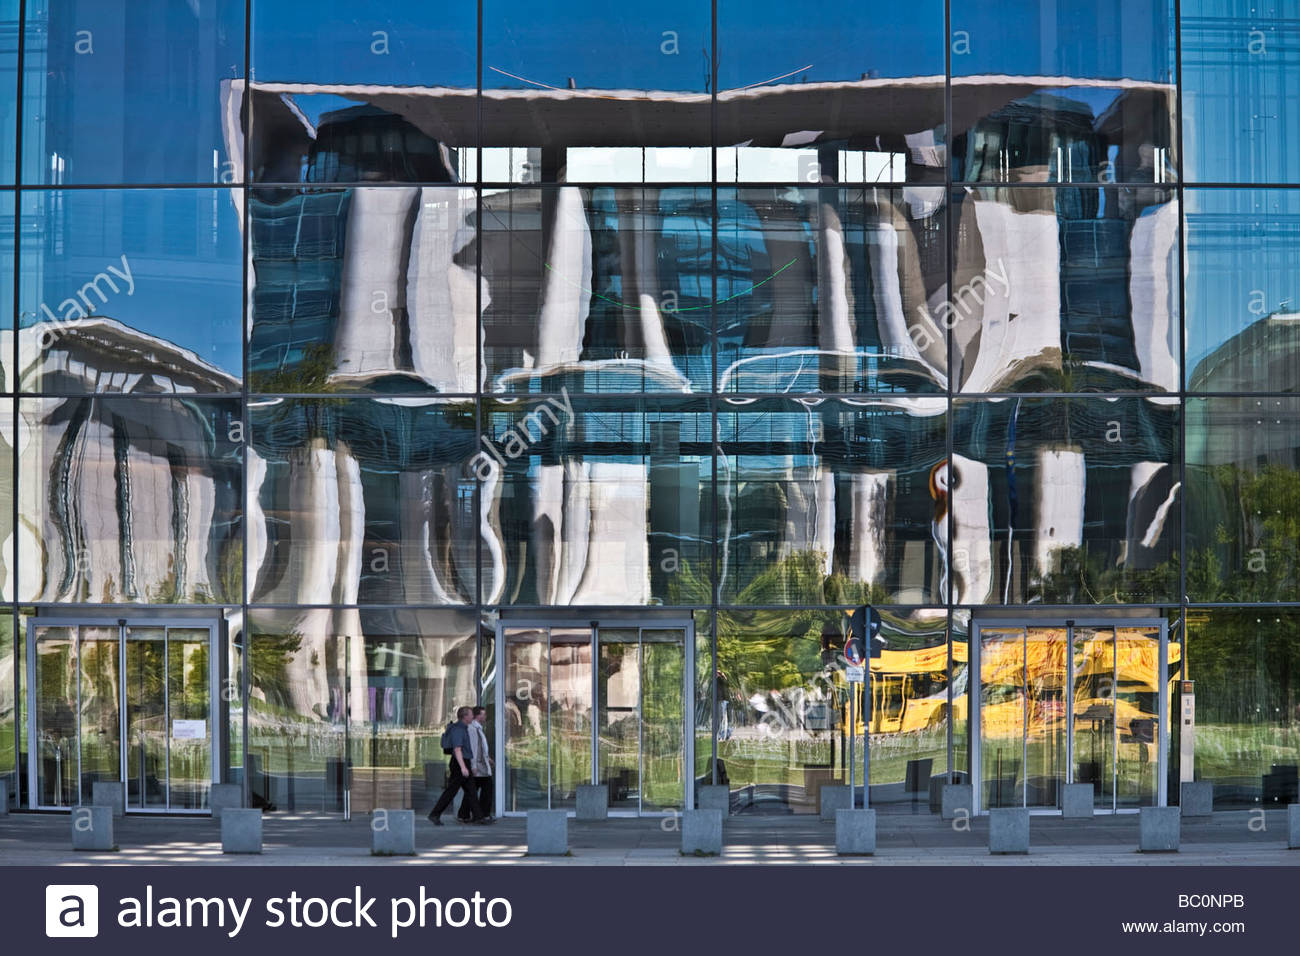 the german federal chancellery building reflected in glass window front - Stock Image